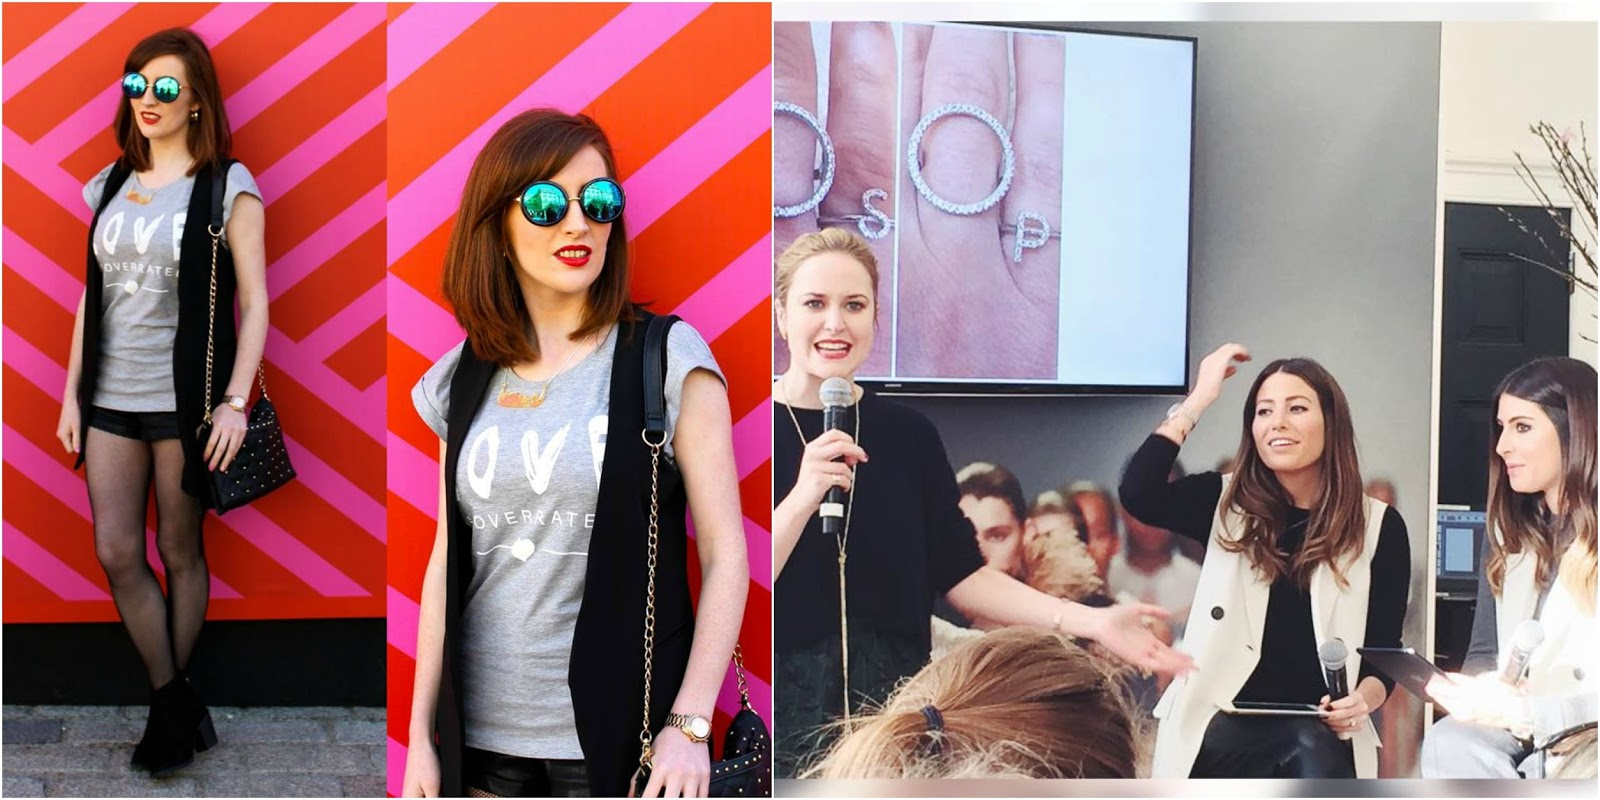 Bec Boop's London Fashion Weekend Experience.